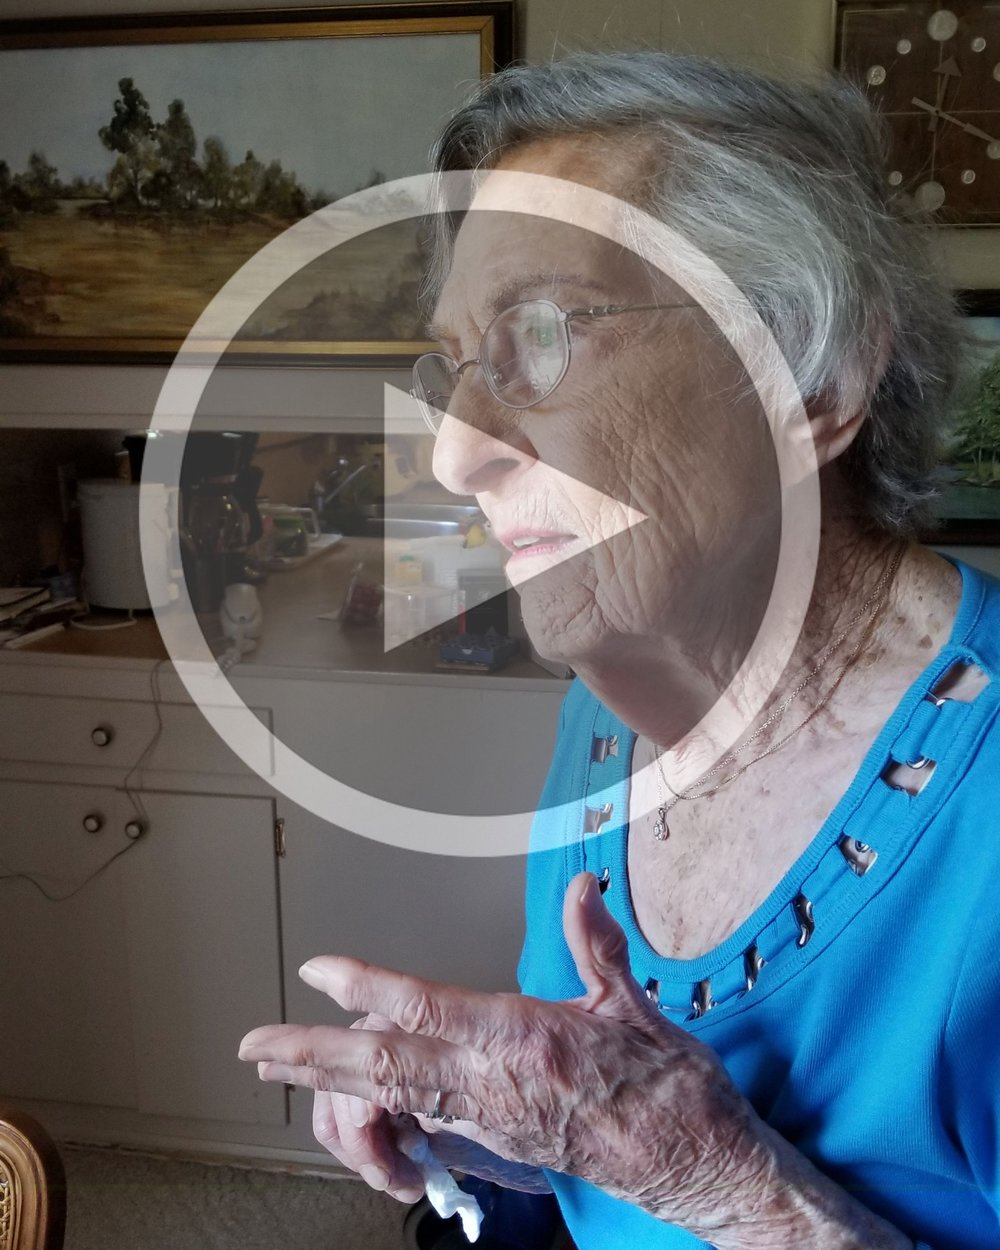 """Episode 3: Katherine Stannick   At 101, there's not much Katherine hasn't seen. She describes her life as """"rather mundane"""", but playing cello at intervals over an 80-year span and living in post-WWII Japan don't seem so mundane to me. Her joy for life is contagious. What's her secret? It will surprise you!"""